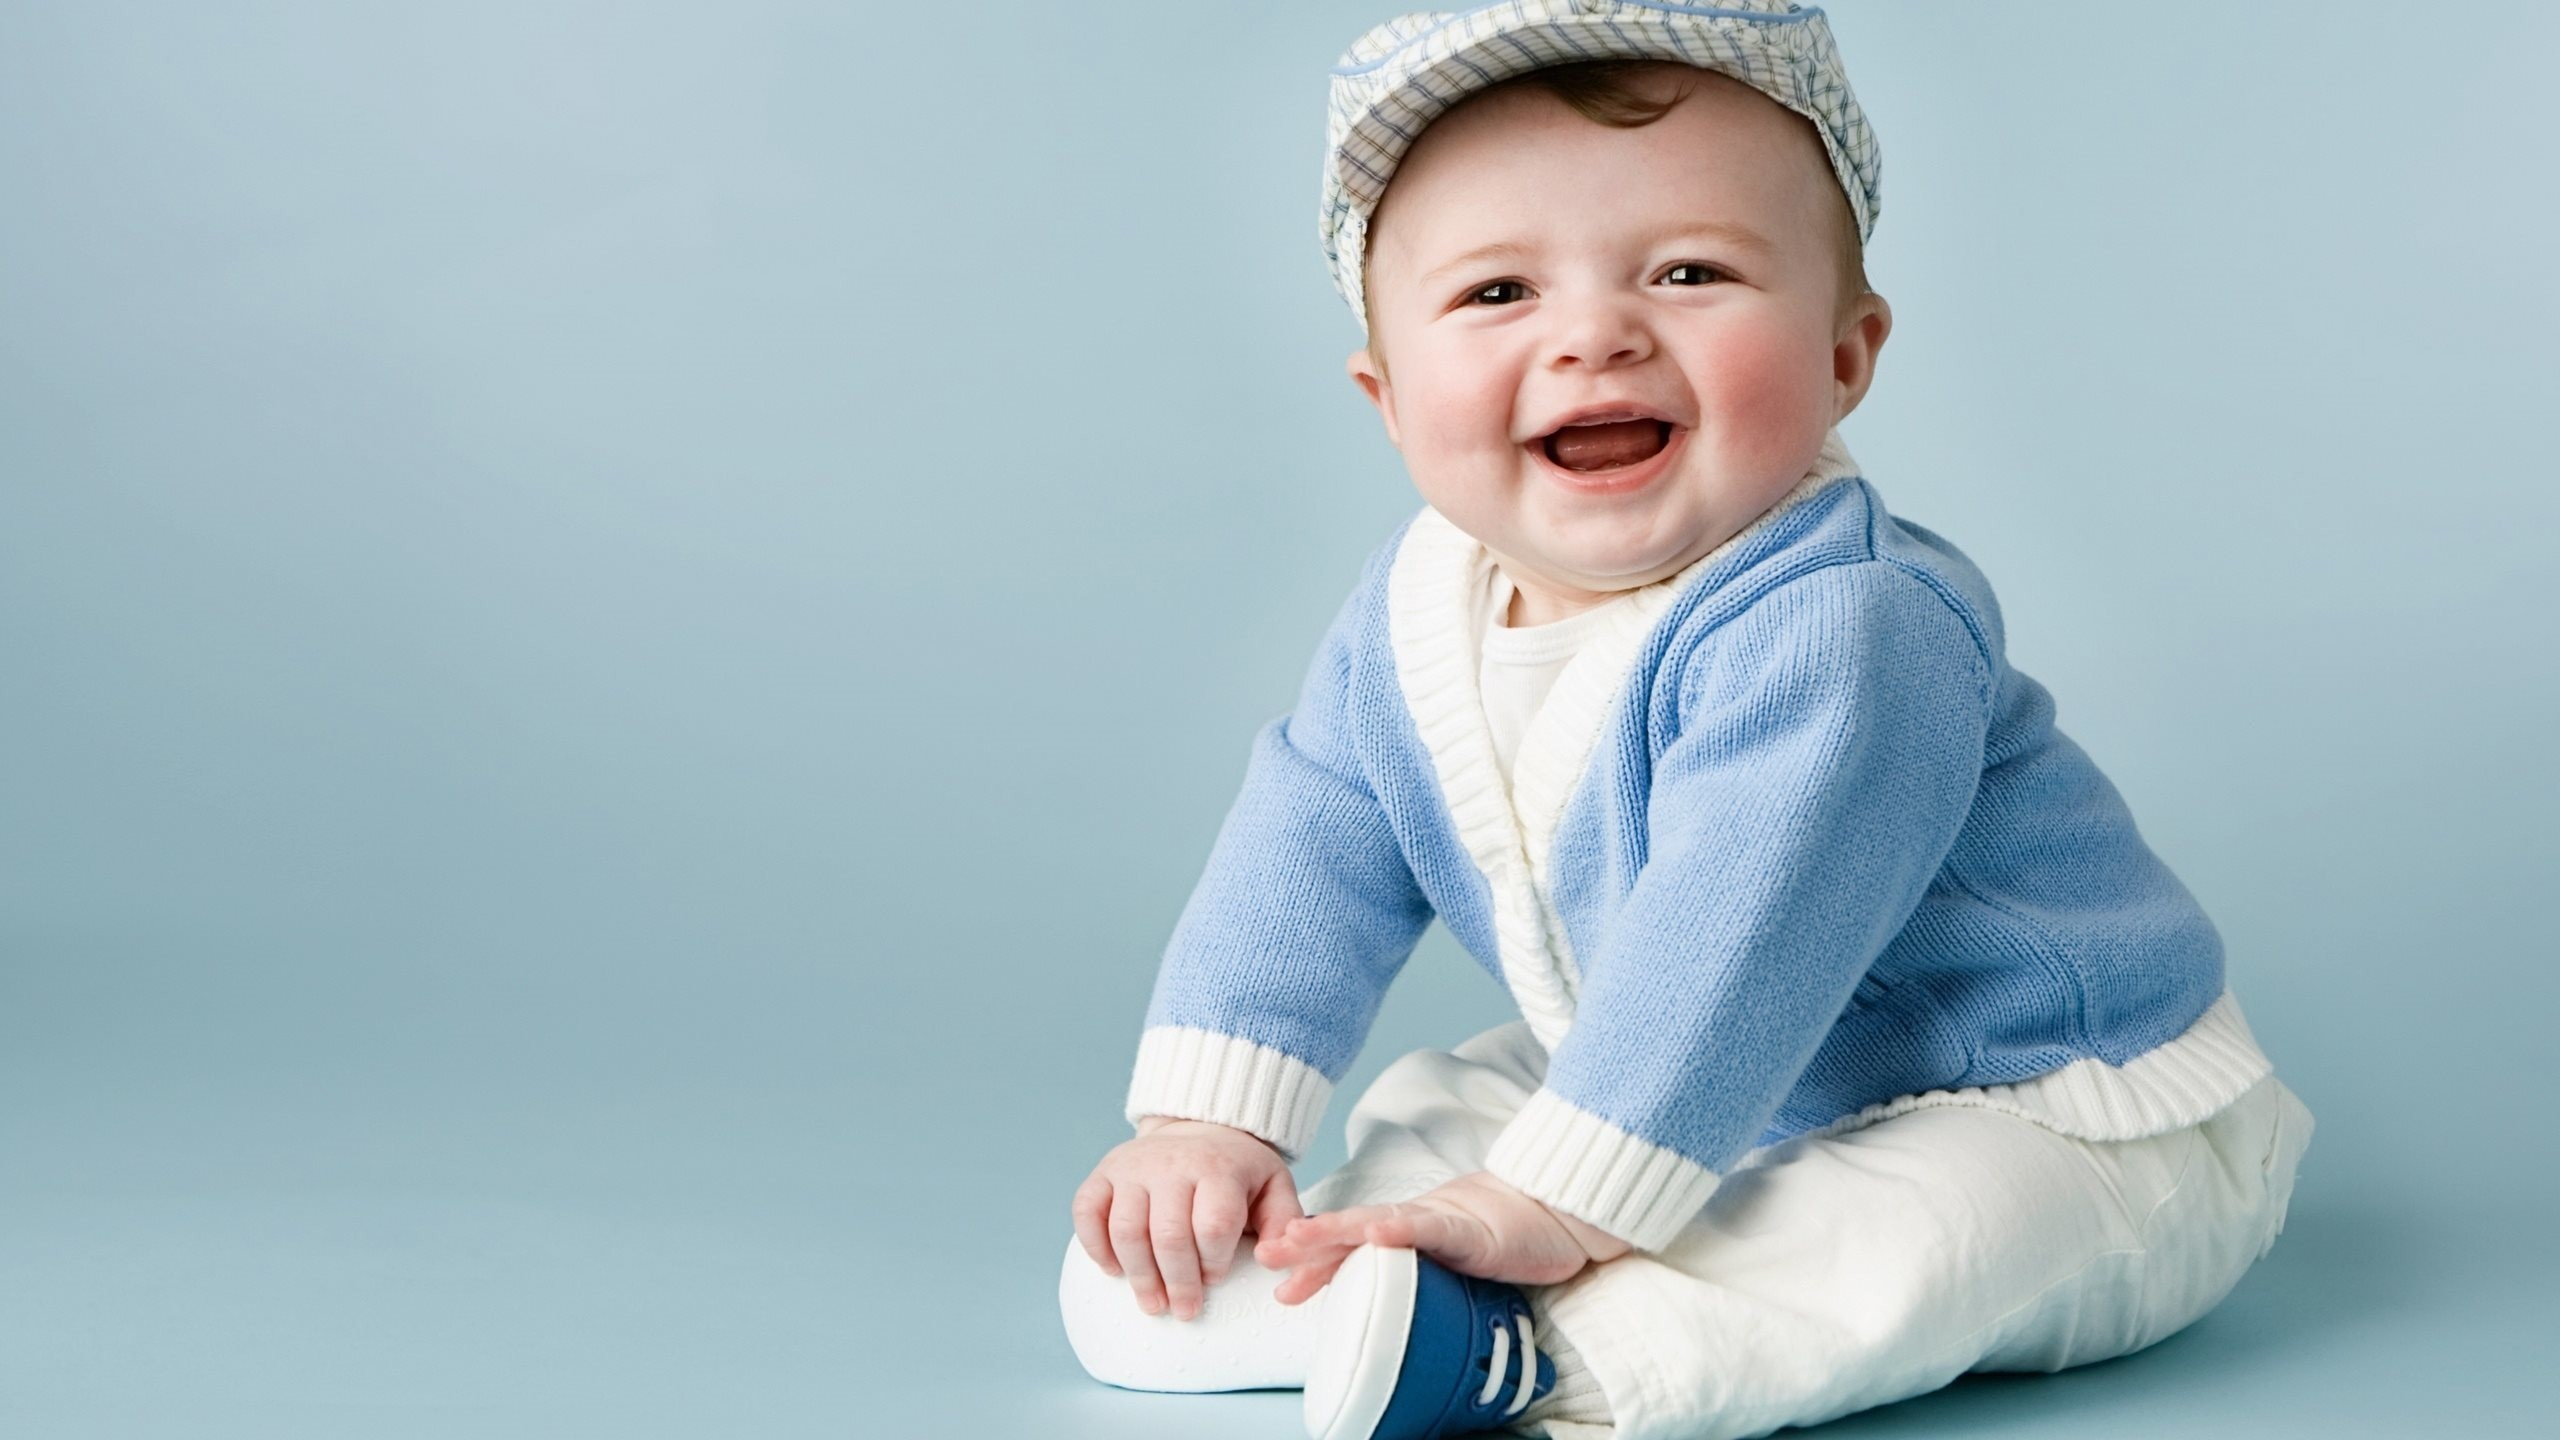 Cute Baby Boys Wallpapers Hd Pictures One Hd Wallpaper Cute Baby Boy 2560x1440 Wallpaper Teahub Io